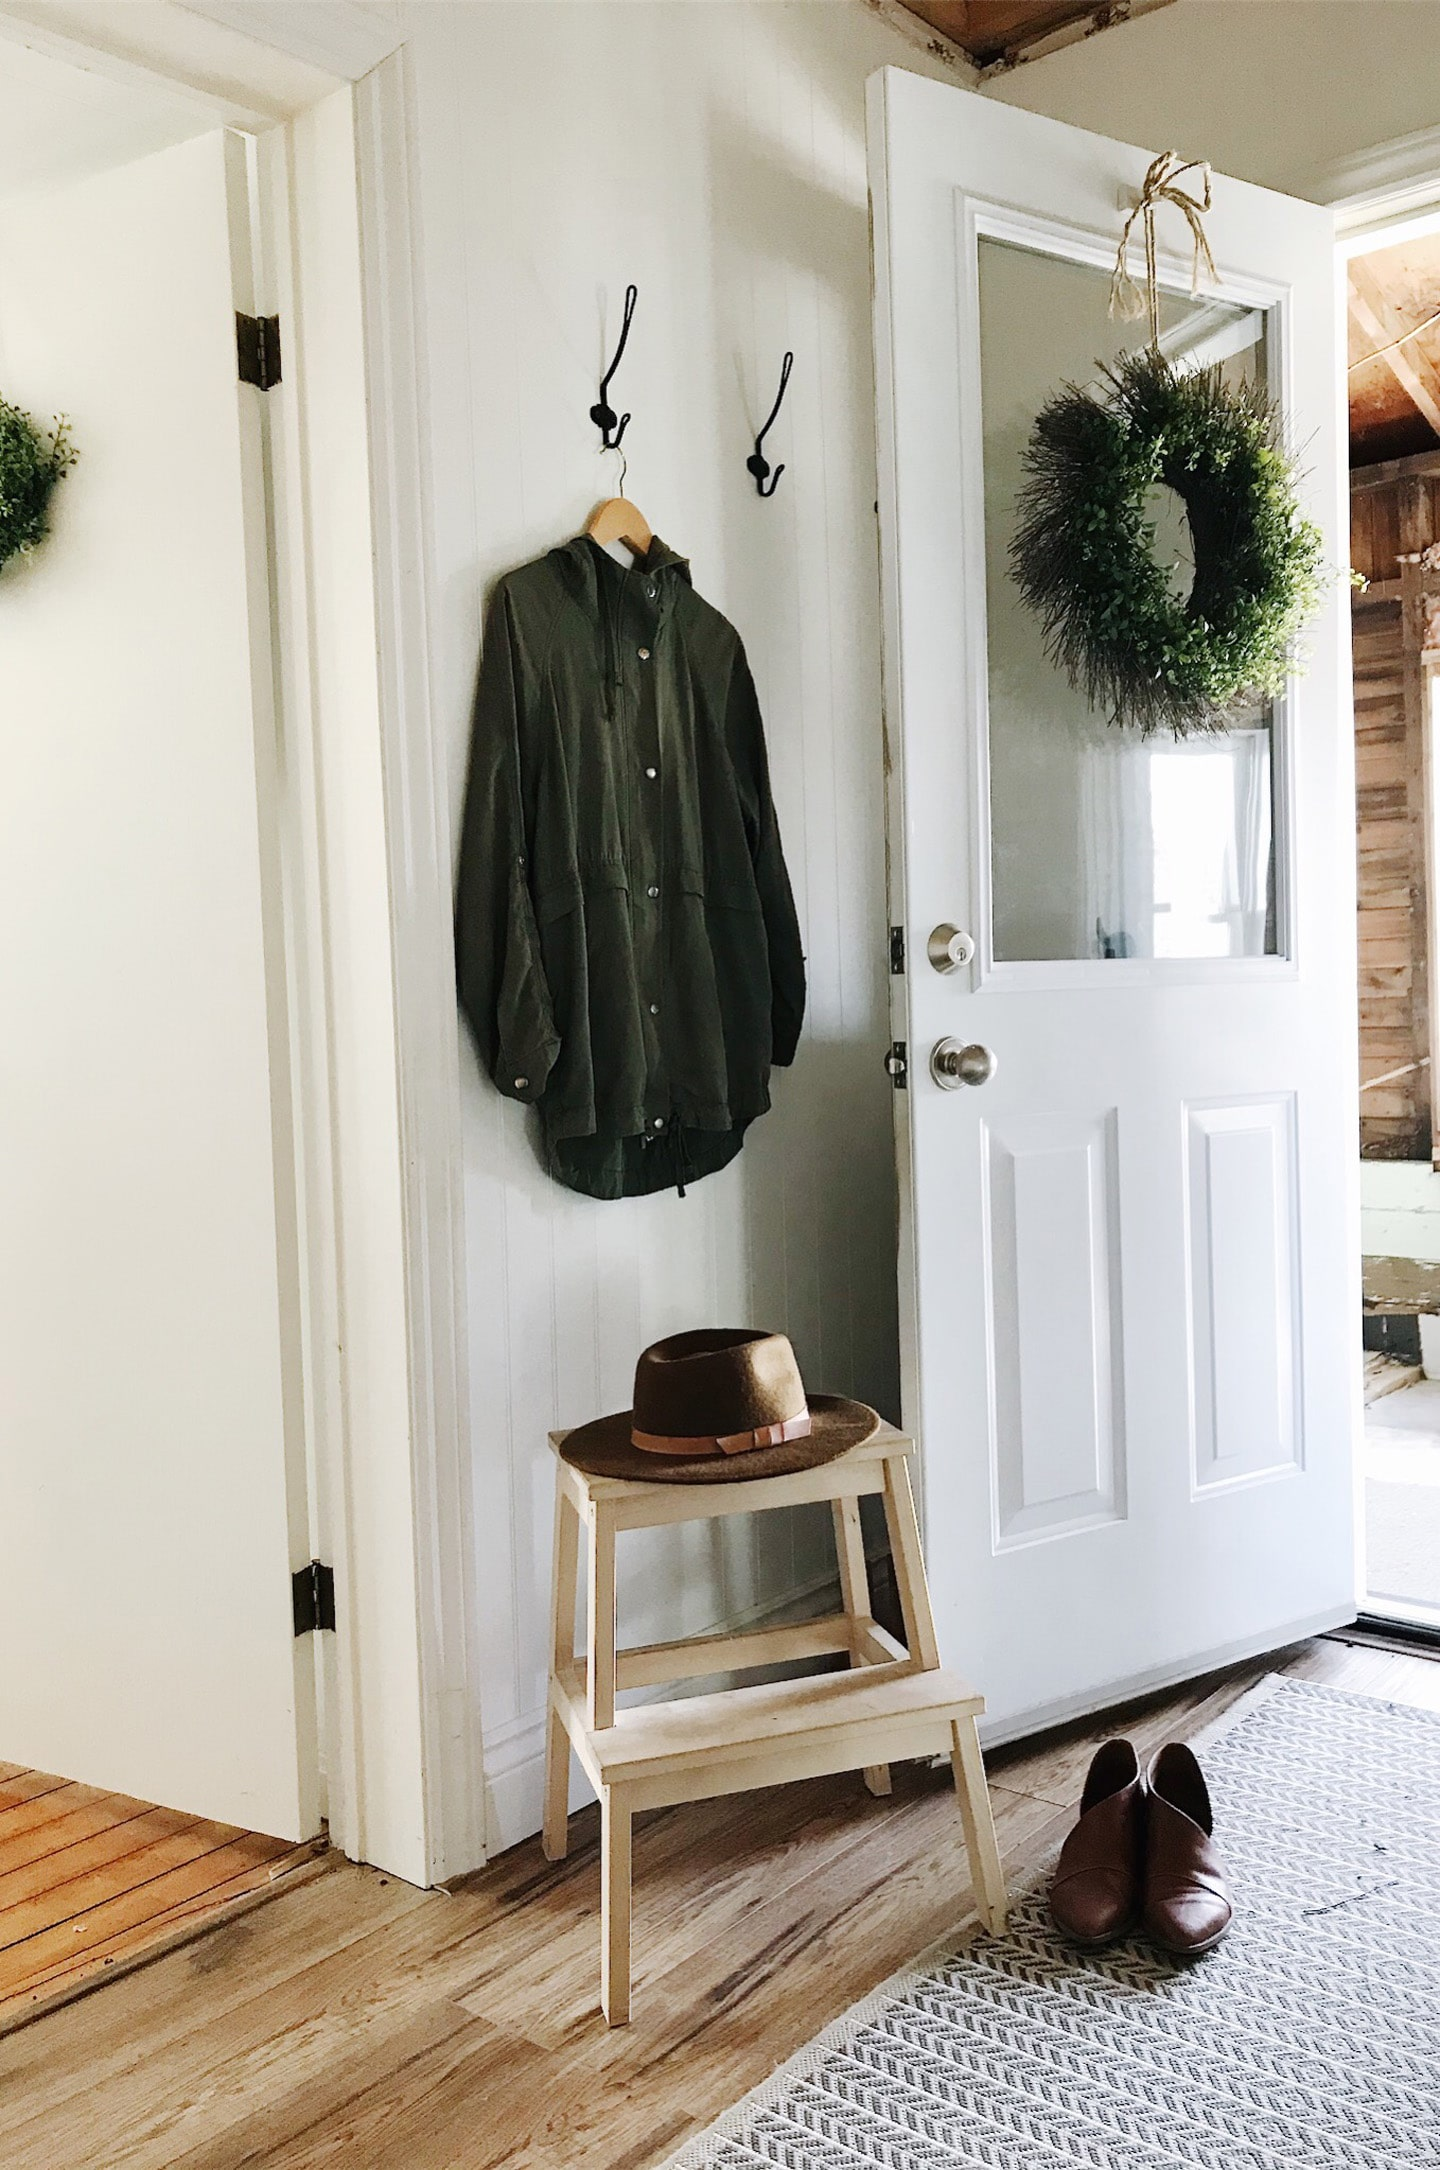 Upcycling a Wreath